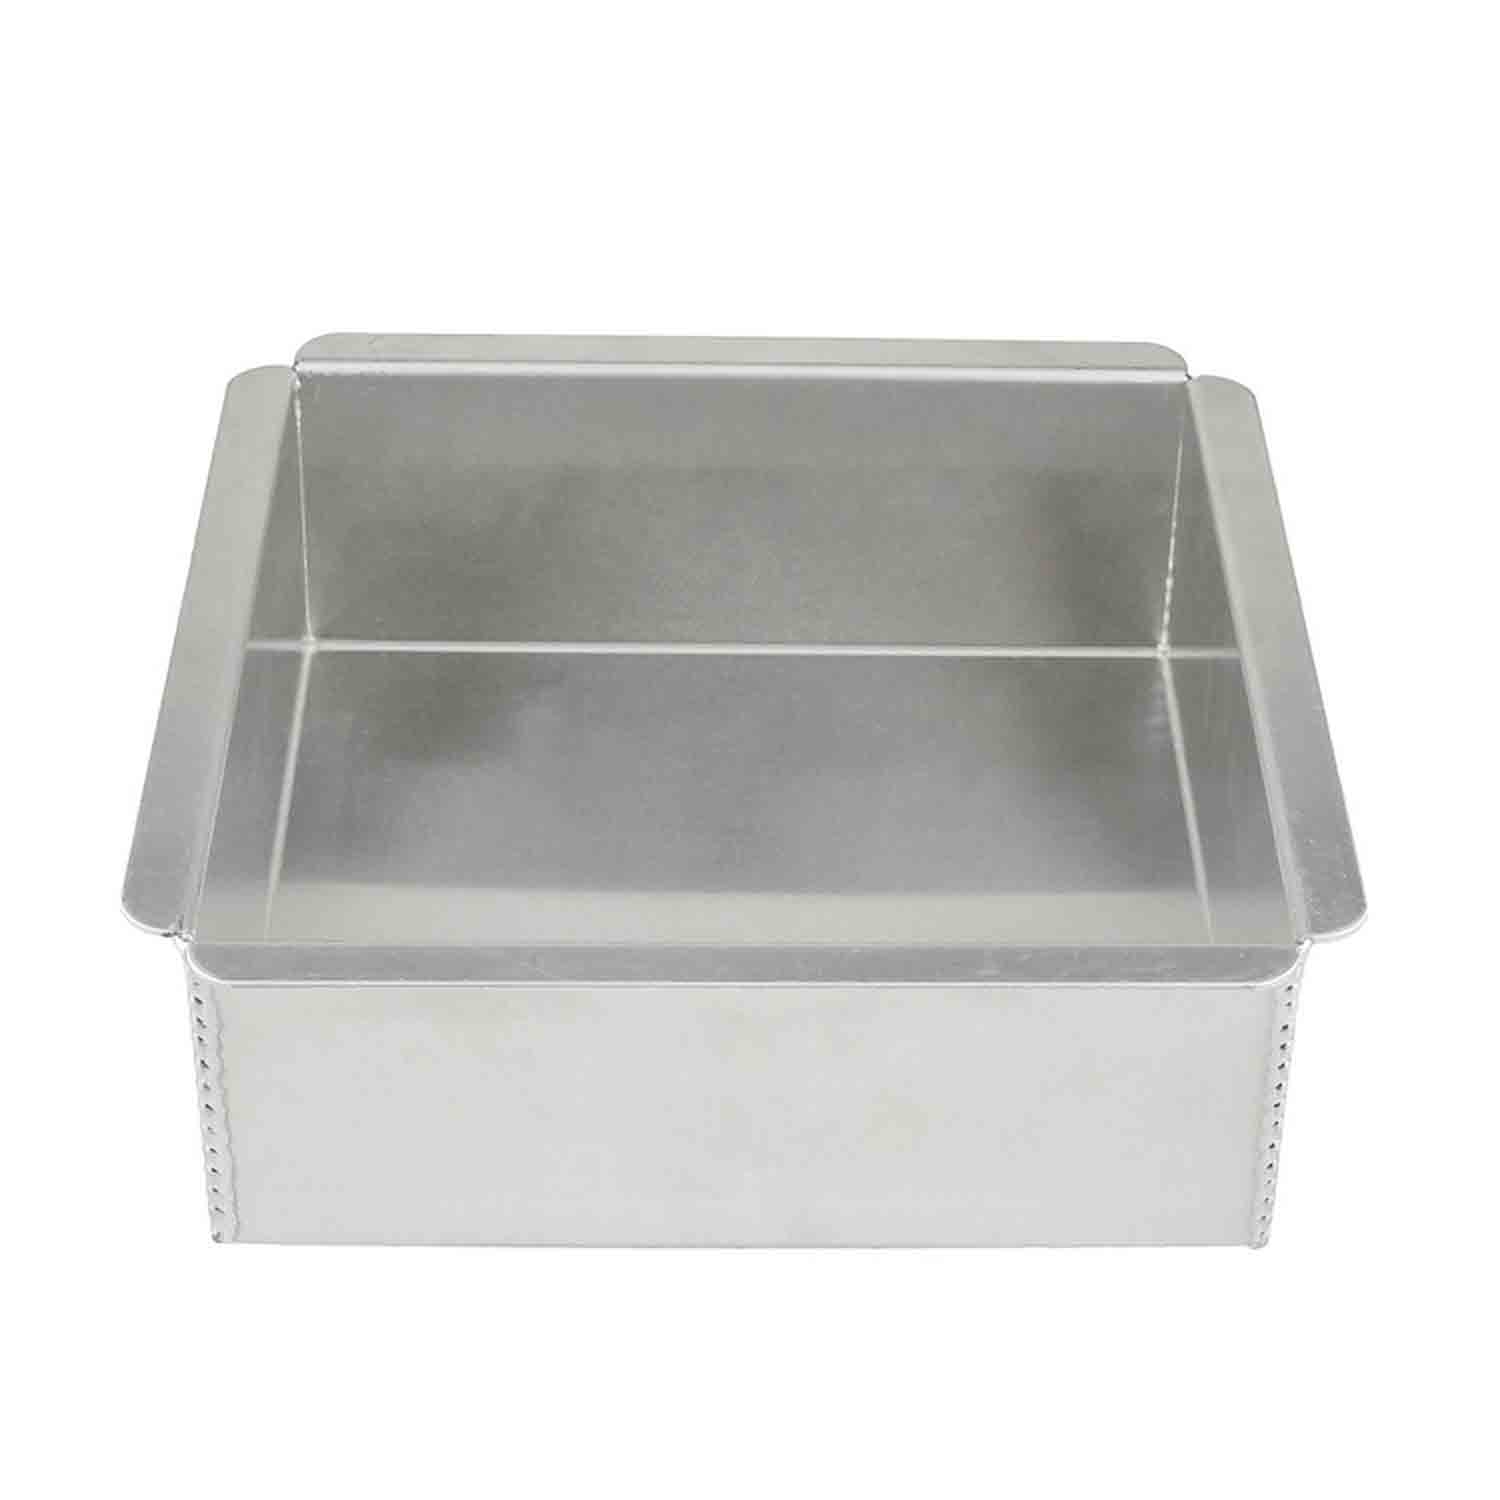 "8 x 3"" Magic Line Square Cake Pan"